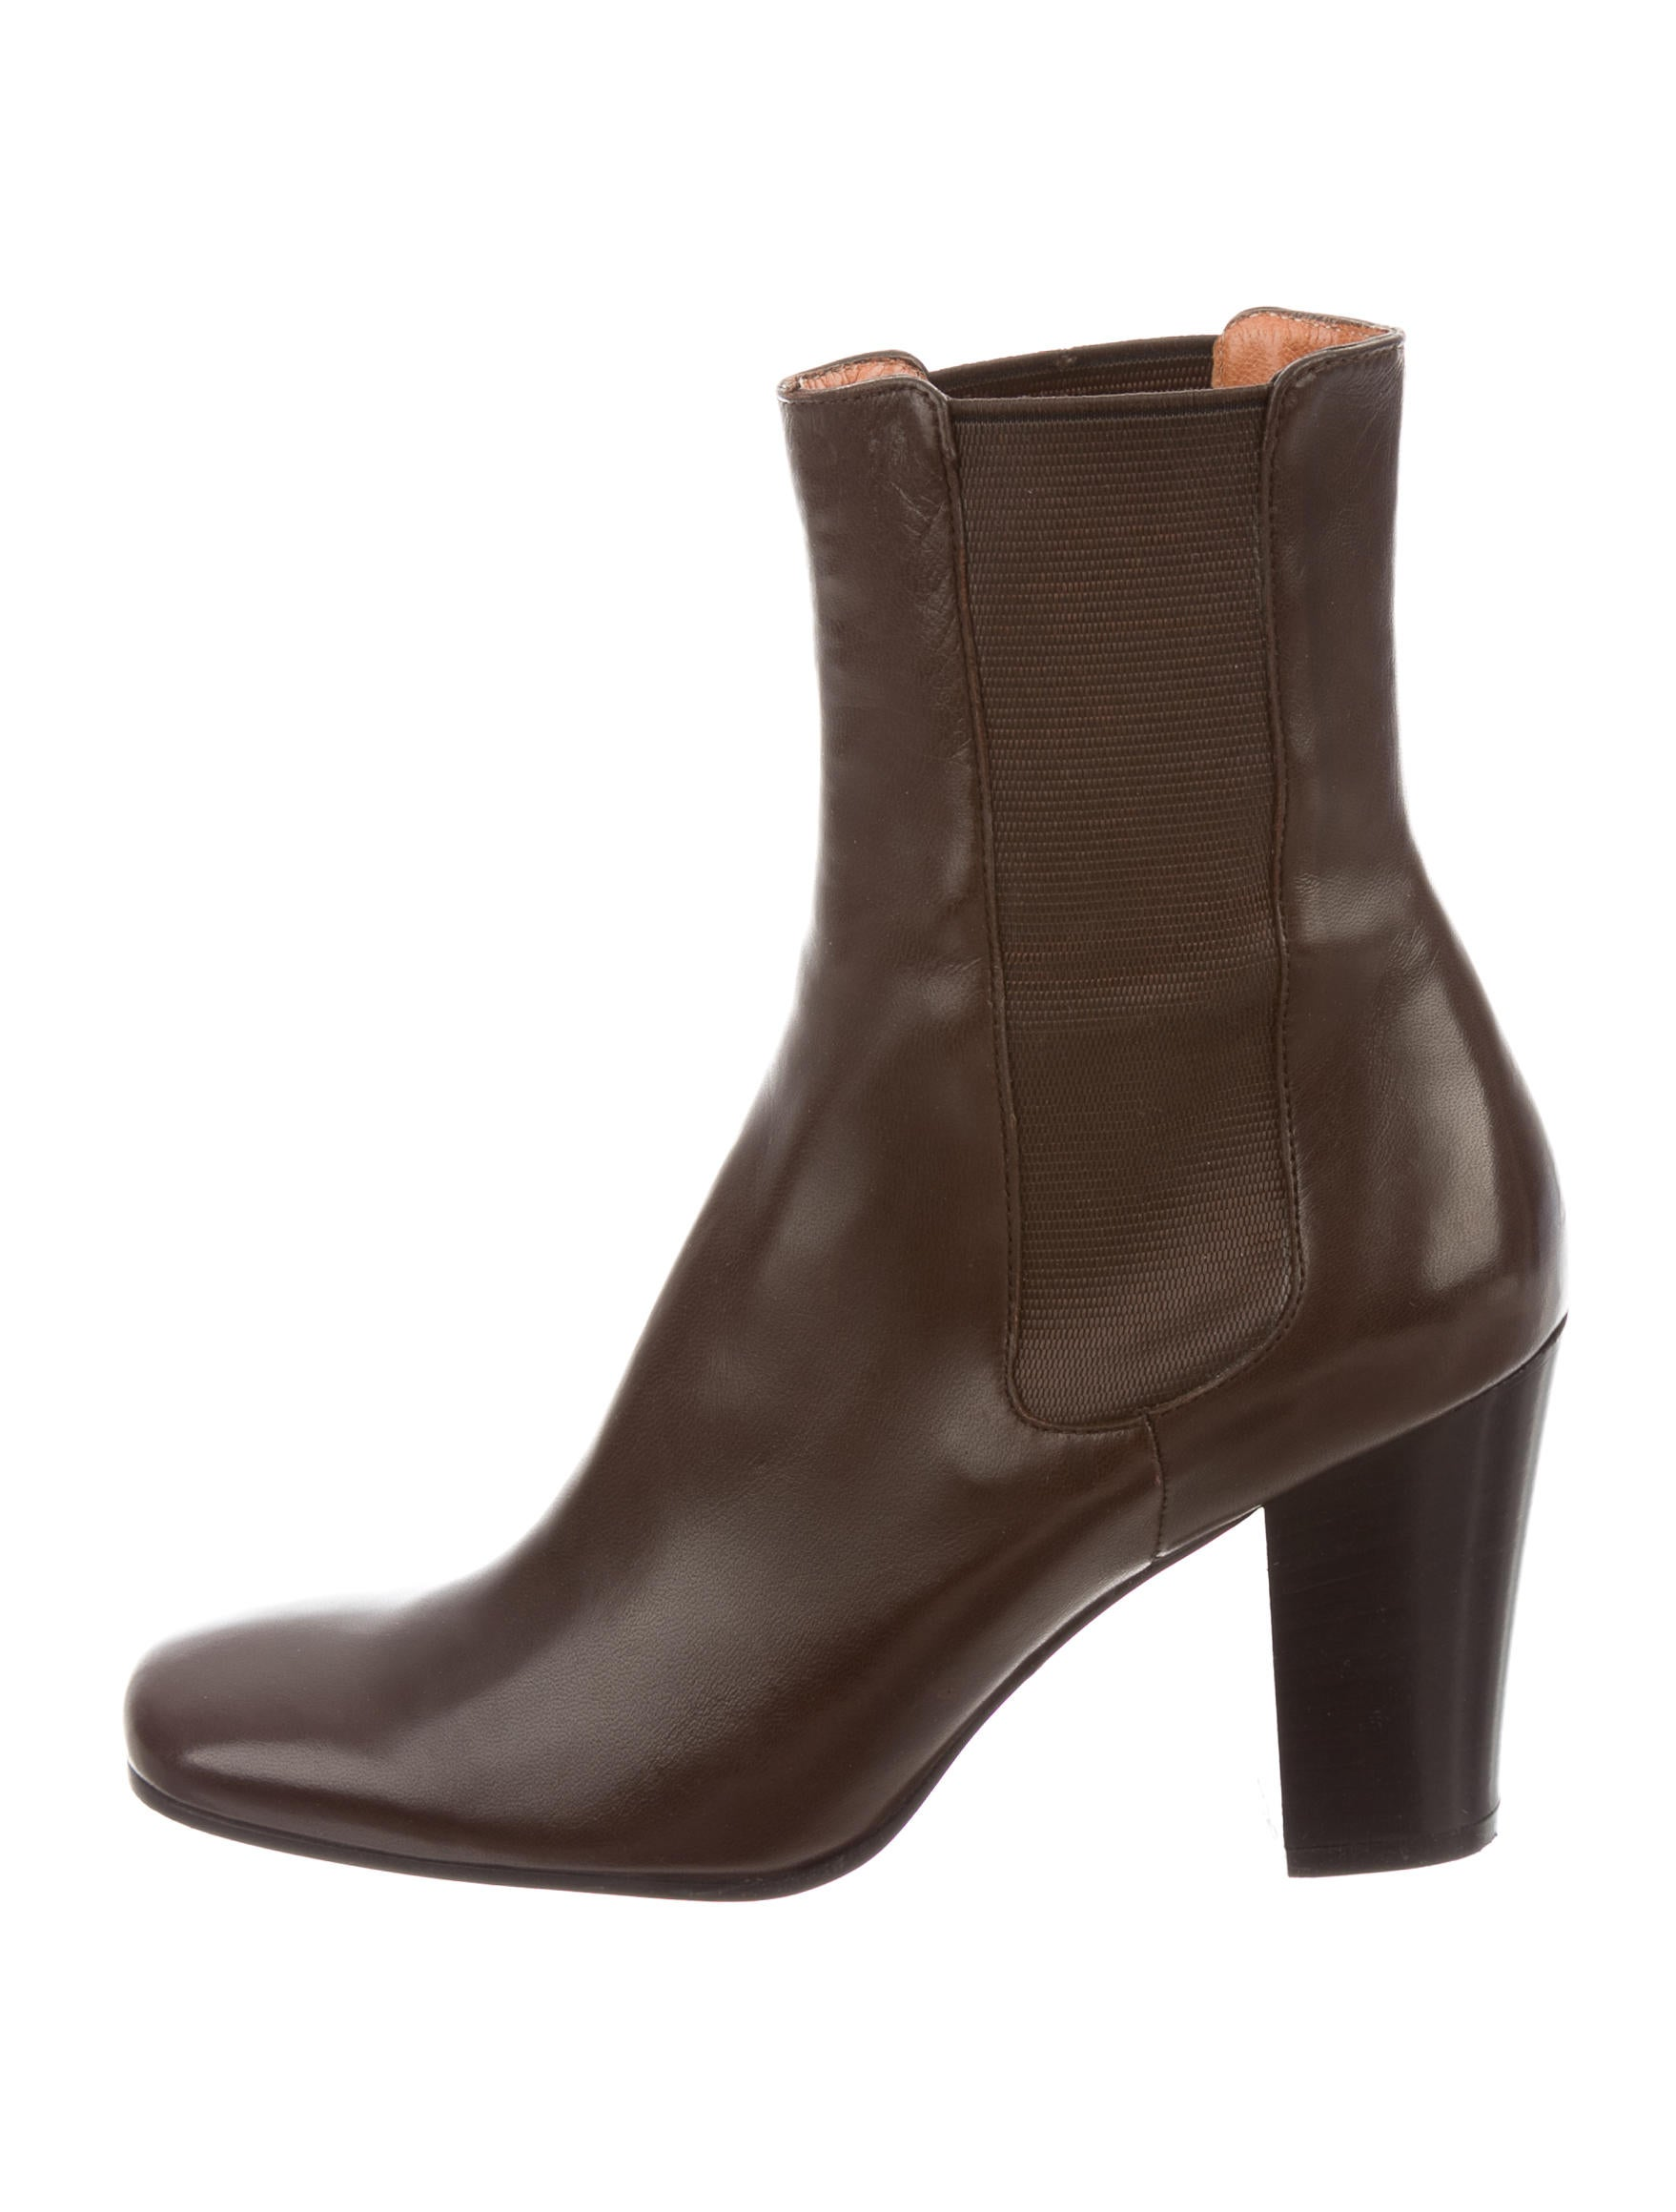 robert clergerie toe ankle boots shoes rog23757